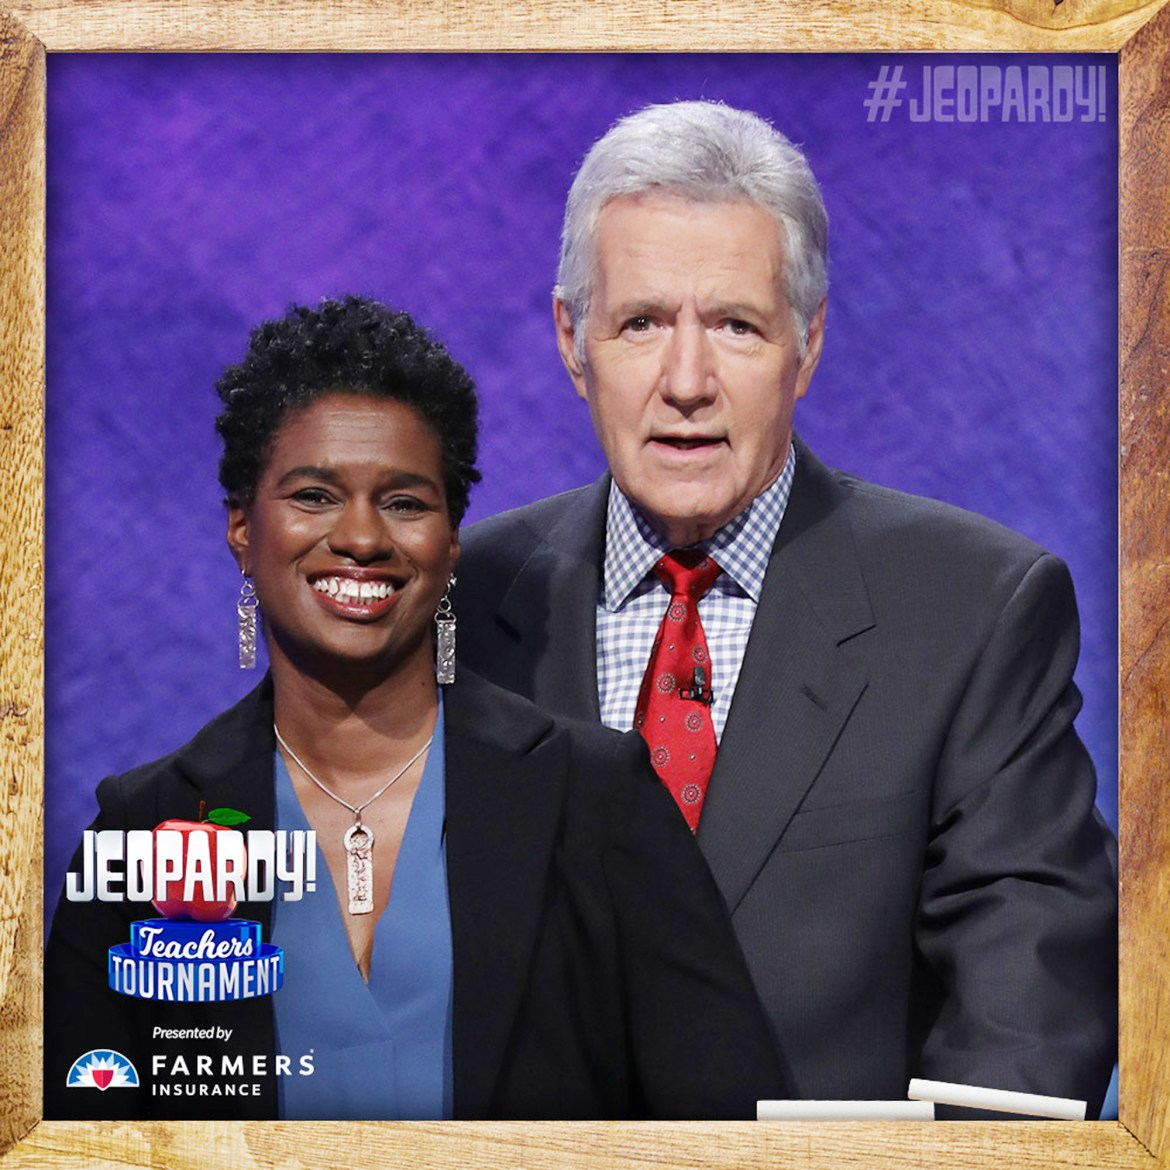 Erika Eason '95 is competing in the Jeopardy! Teachers Tournament this week.